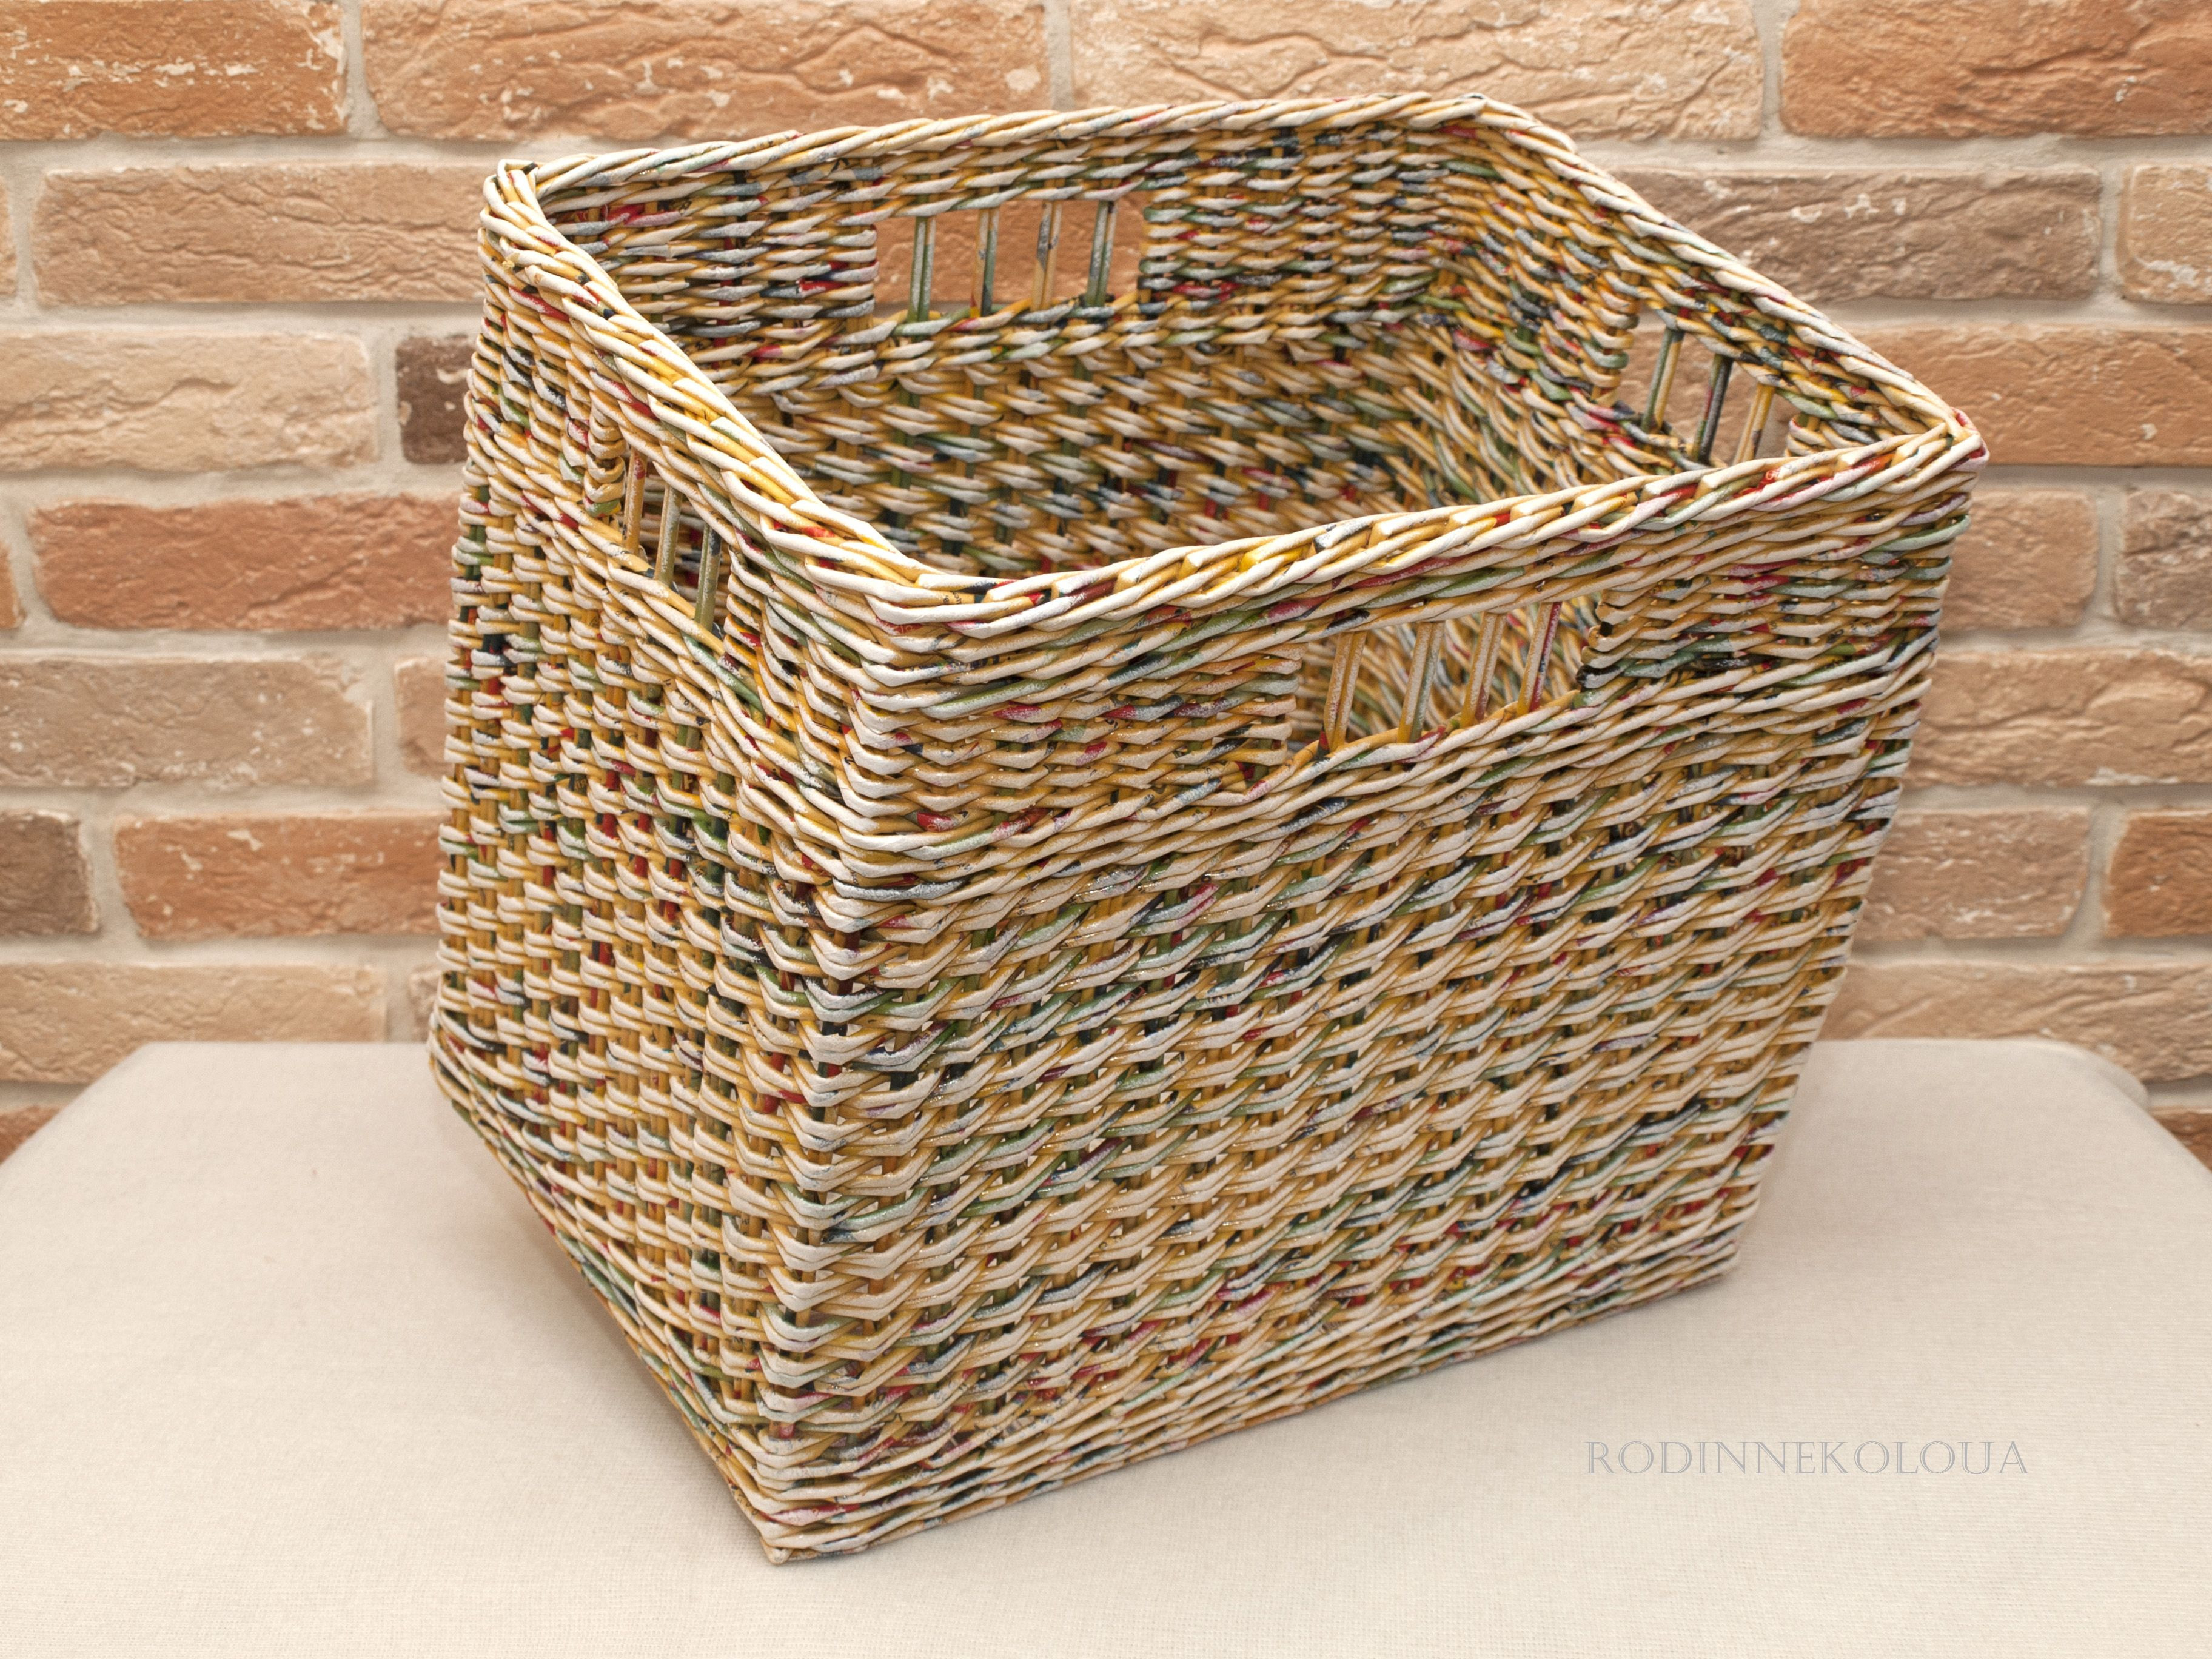 large wicker vase of shelf basket large wicker hand made basket wicker storage basket in shelf basket large wicker hand made basket wicker storage basket storage bin laundry basket toy baby